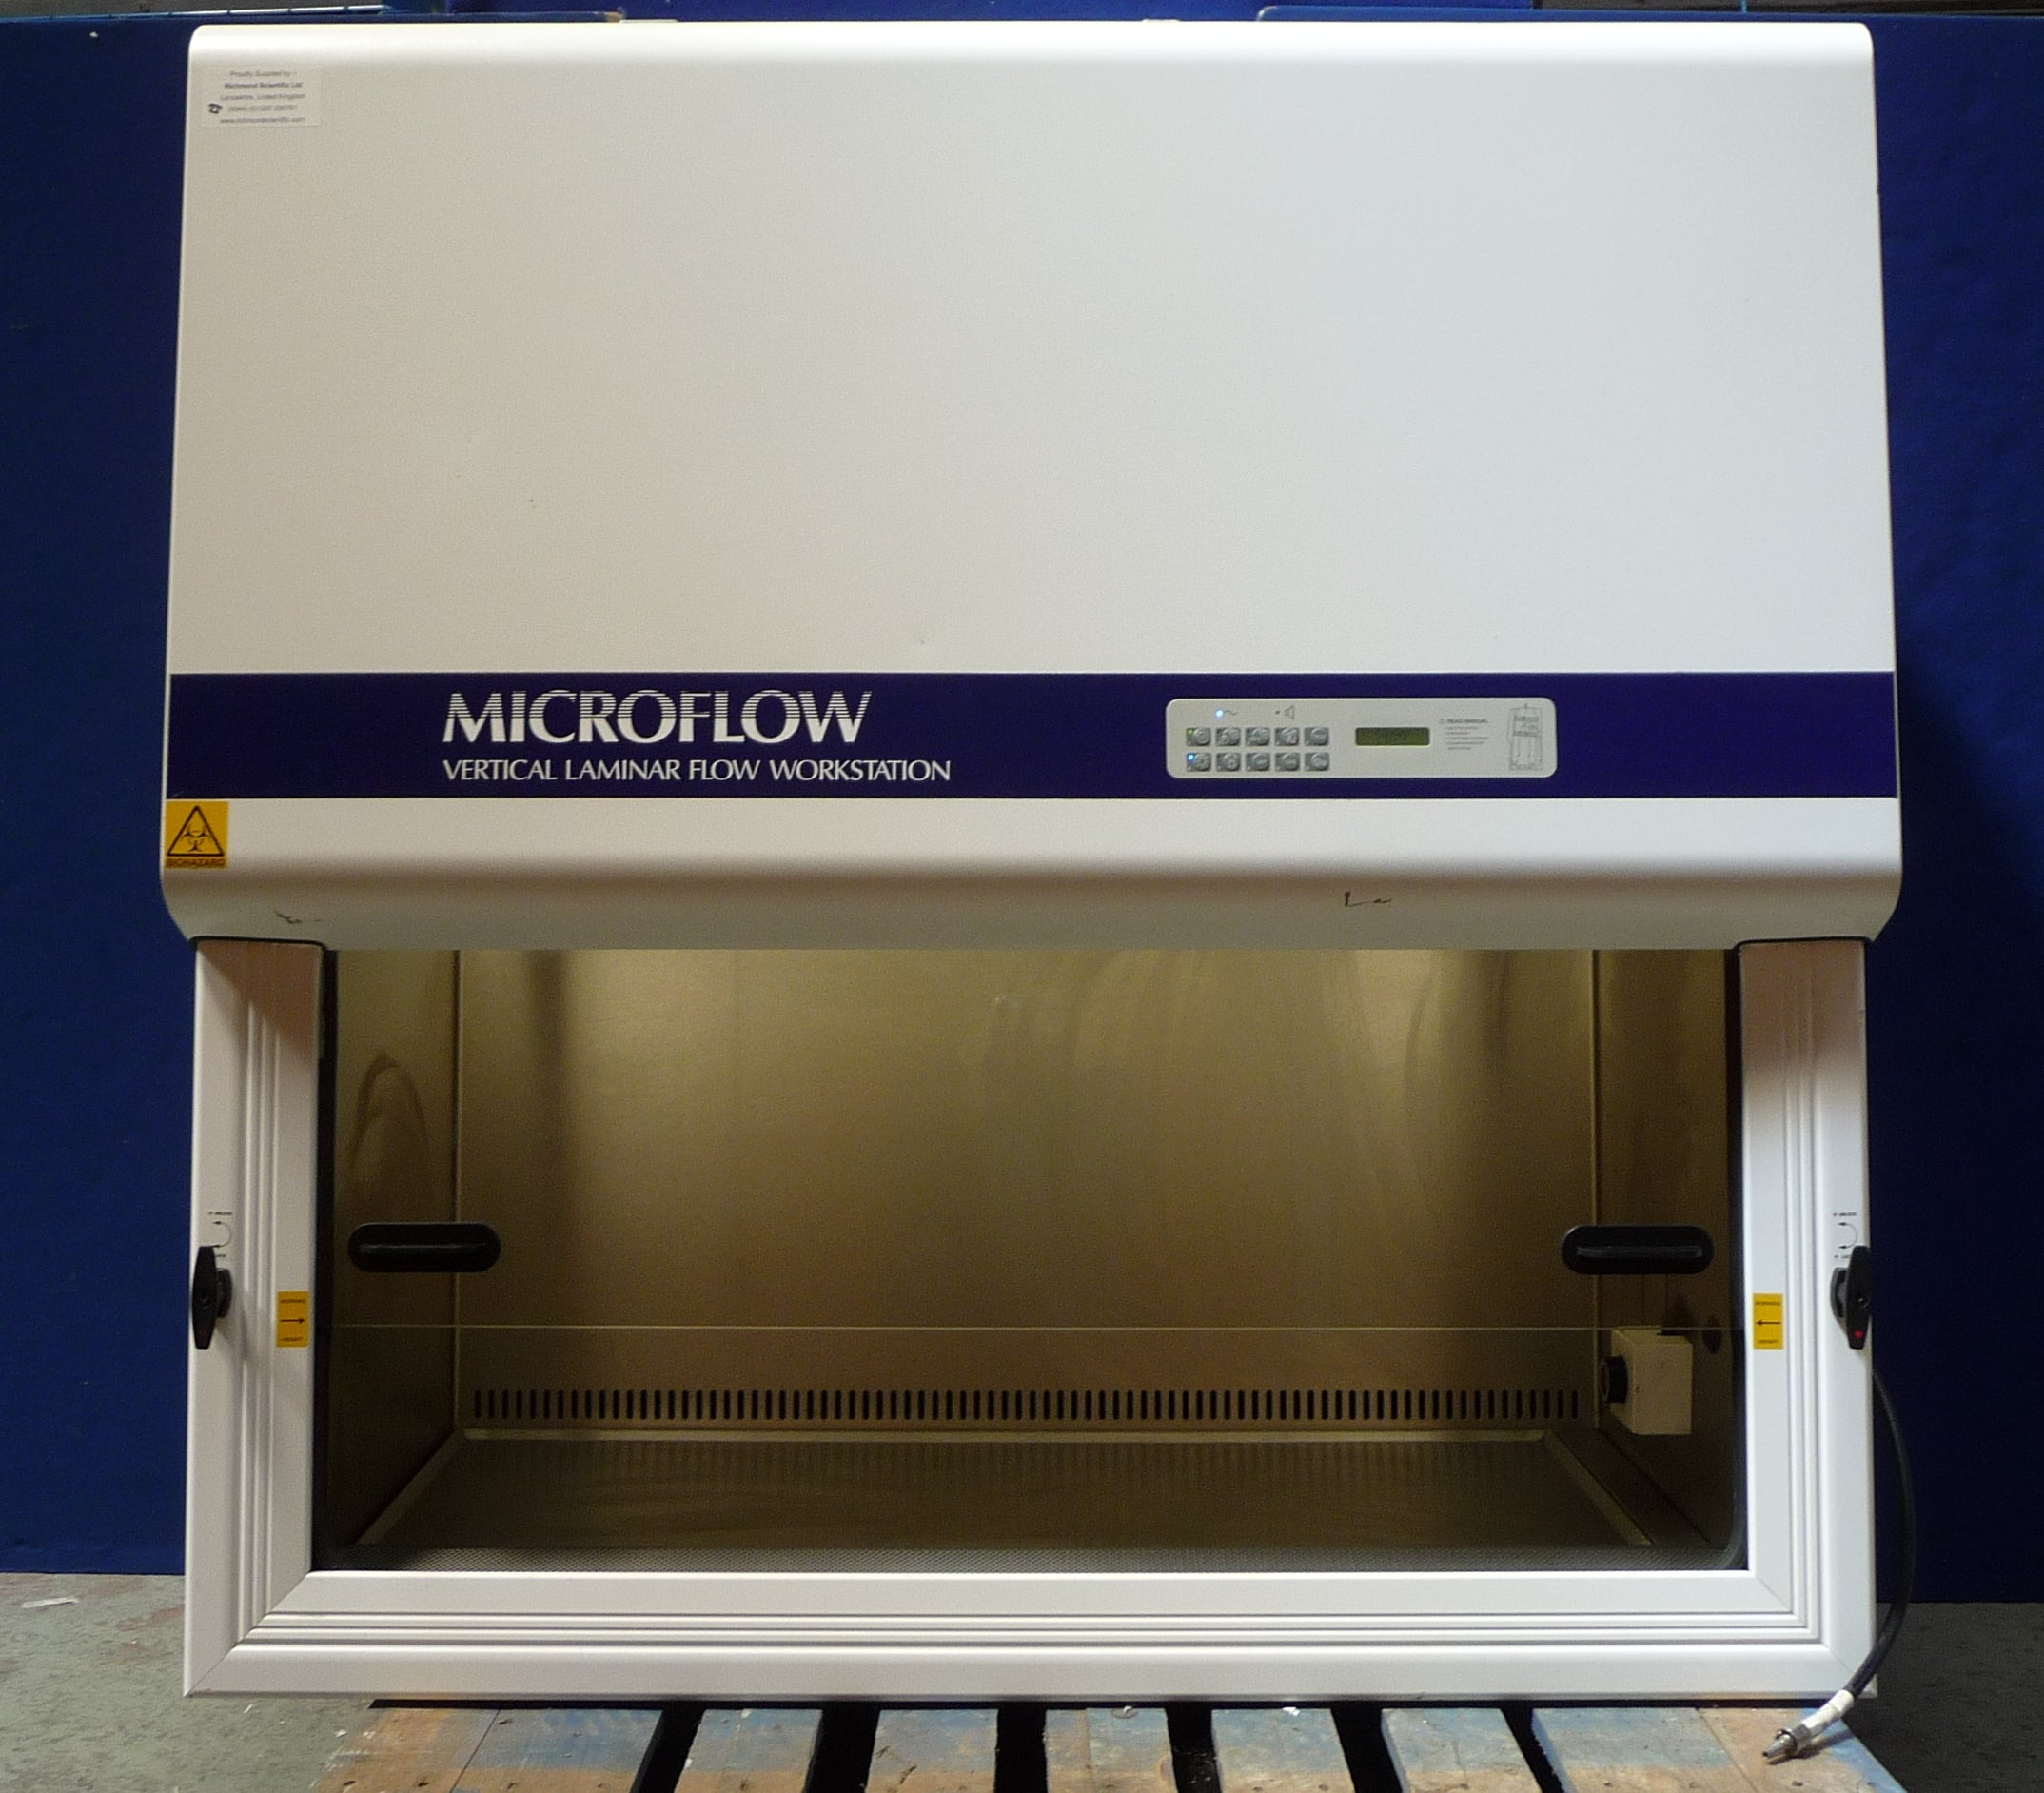 Microflow Vertical Laminar Flow Workstation